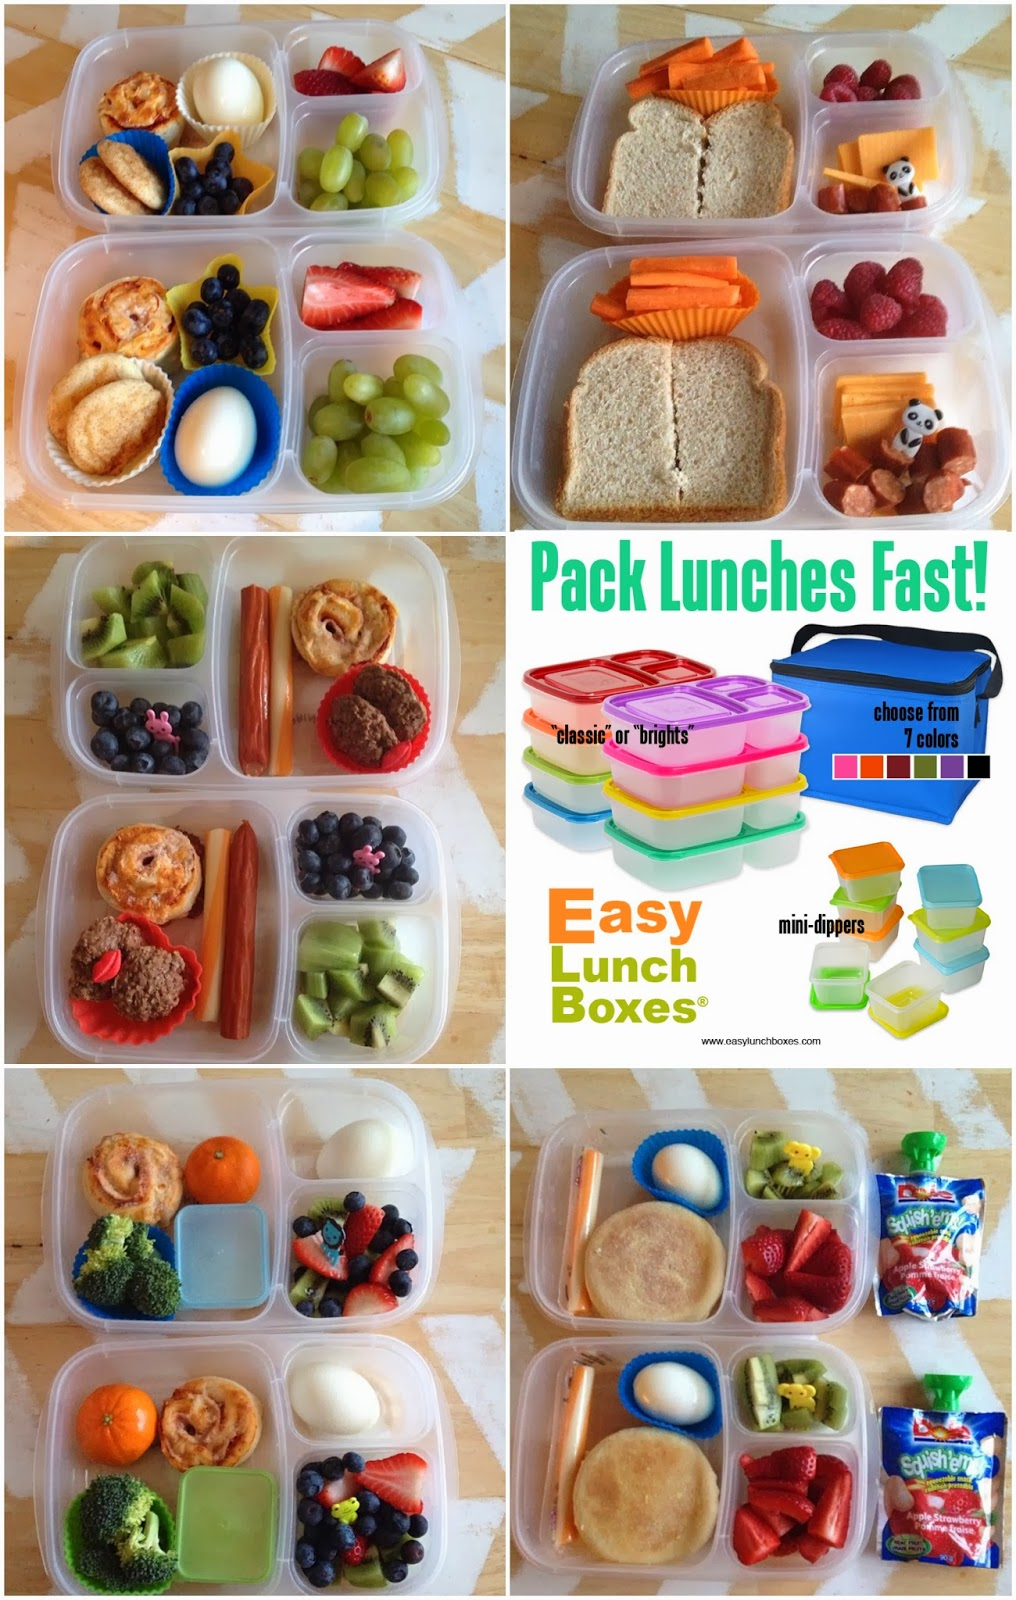 Capital b inspiring creativity link party and an easy lunchboxes inspiring creativity link party and an easy lunchboxes giveaway forumfinder Choice Image